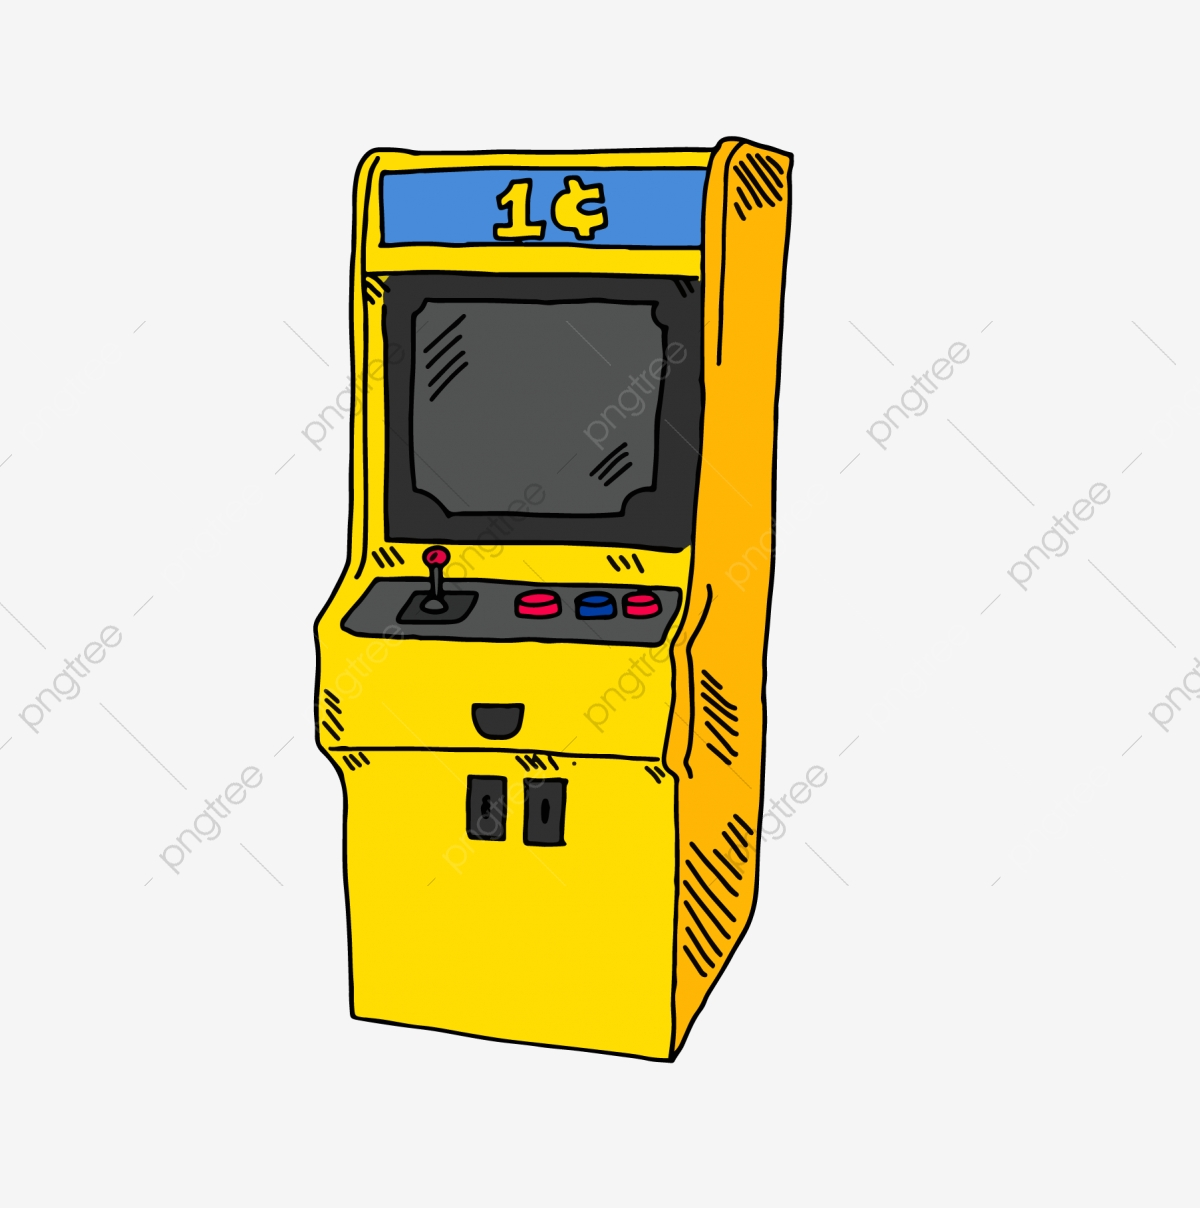 Arcade clipart game console. Warm color child toy